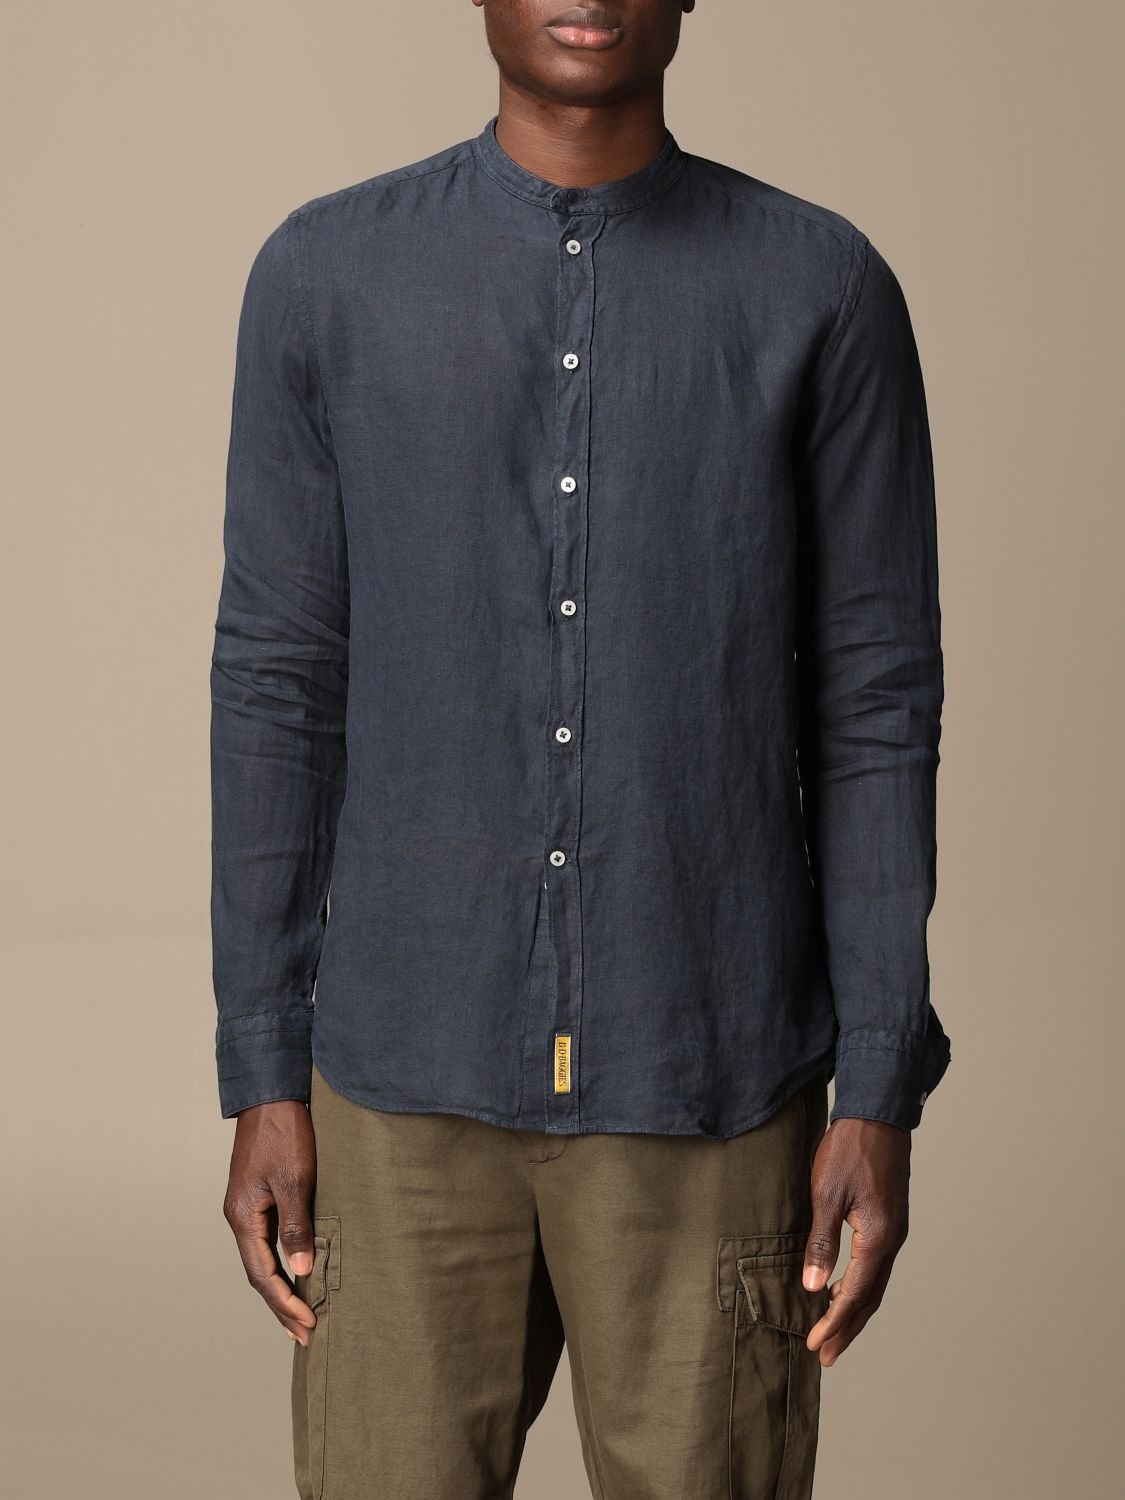 Chemise An American Tradition: Chemise homme Bd Baggies bleu 1